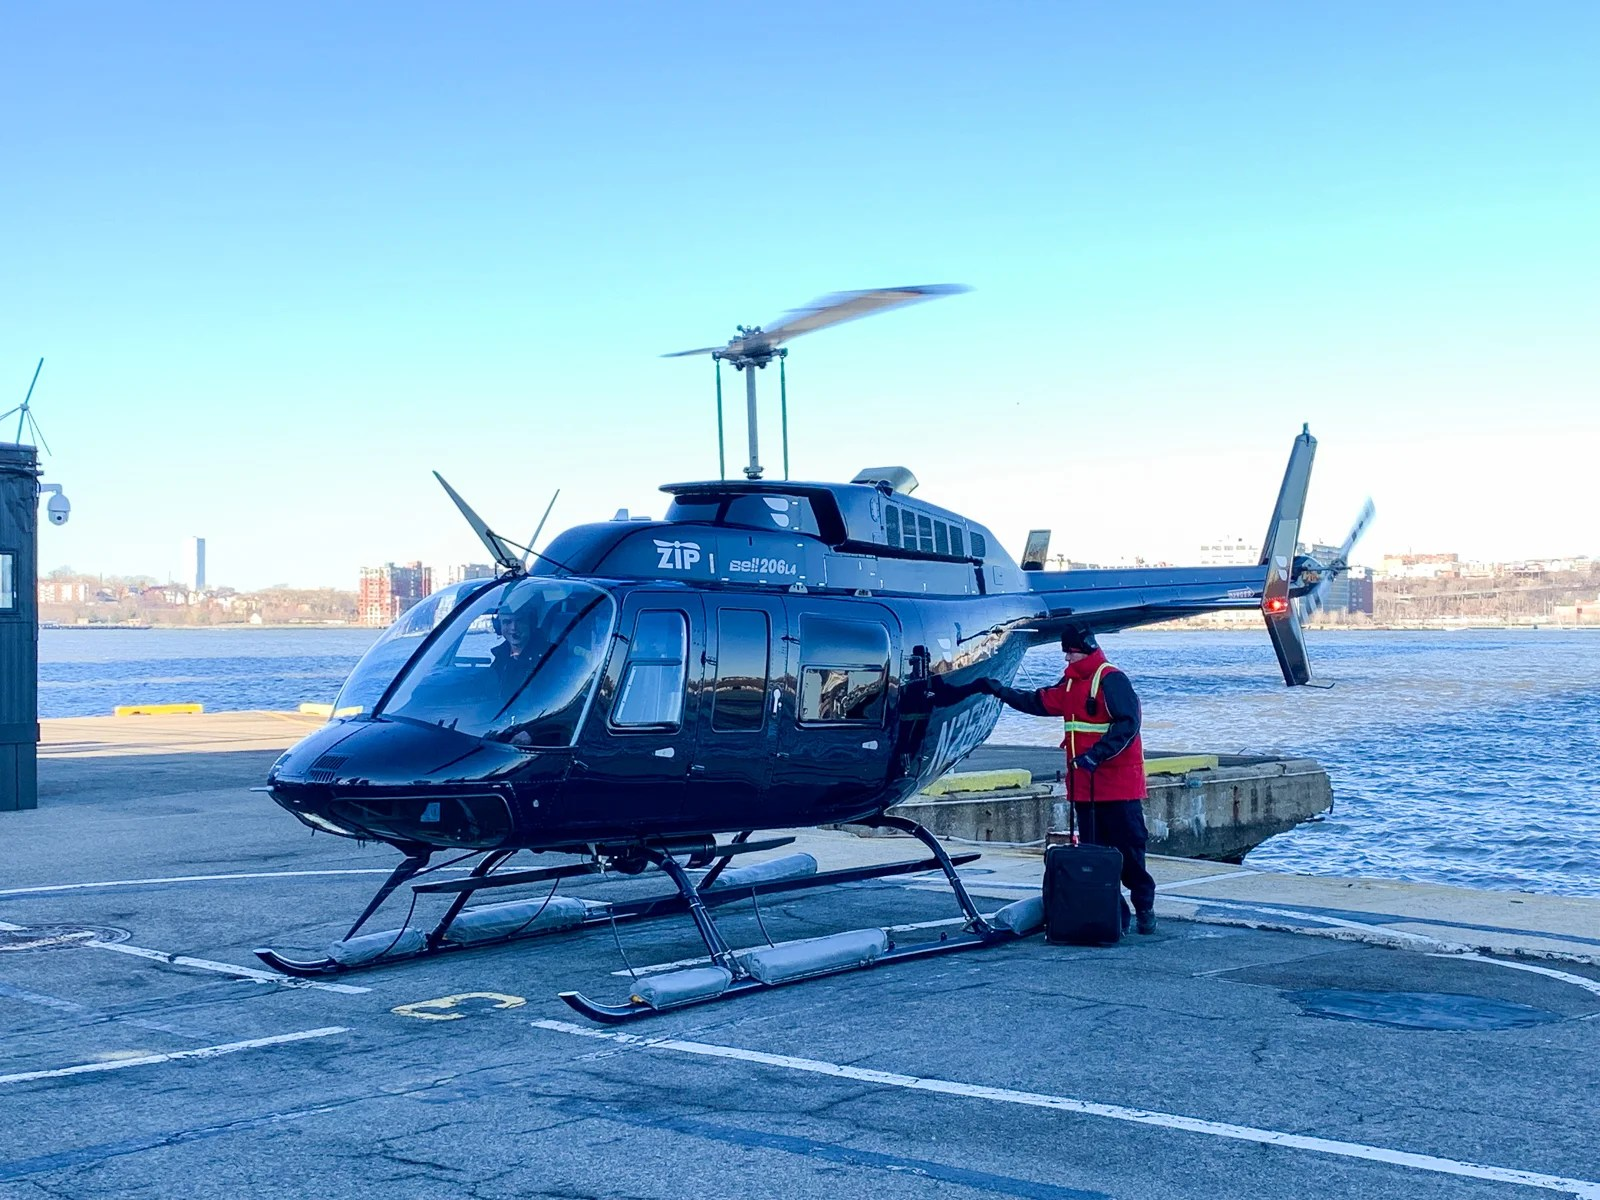 Review: BLADE Continuous Helicopter Service From NYC to JFK